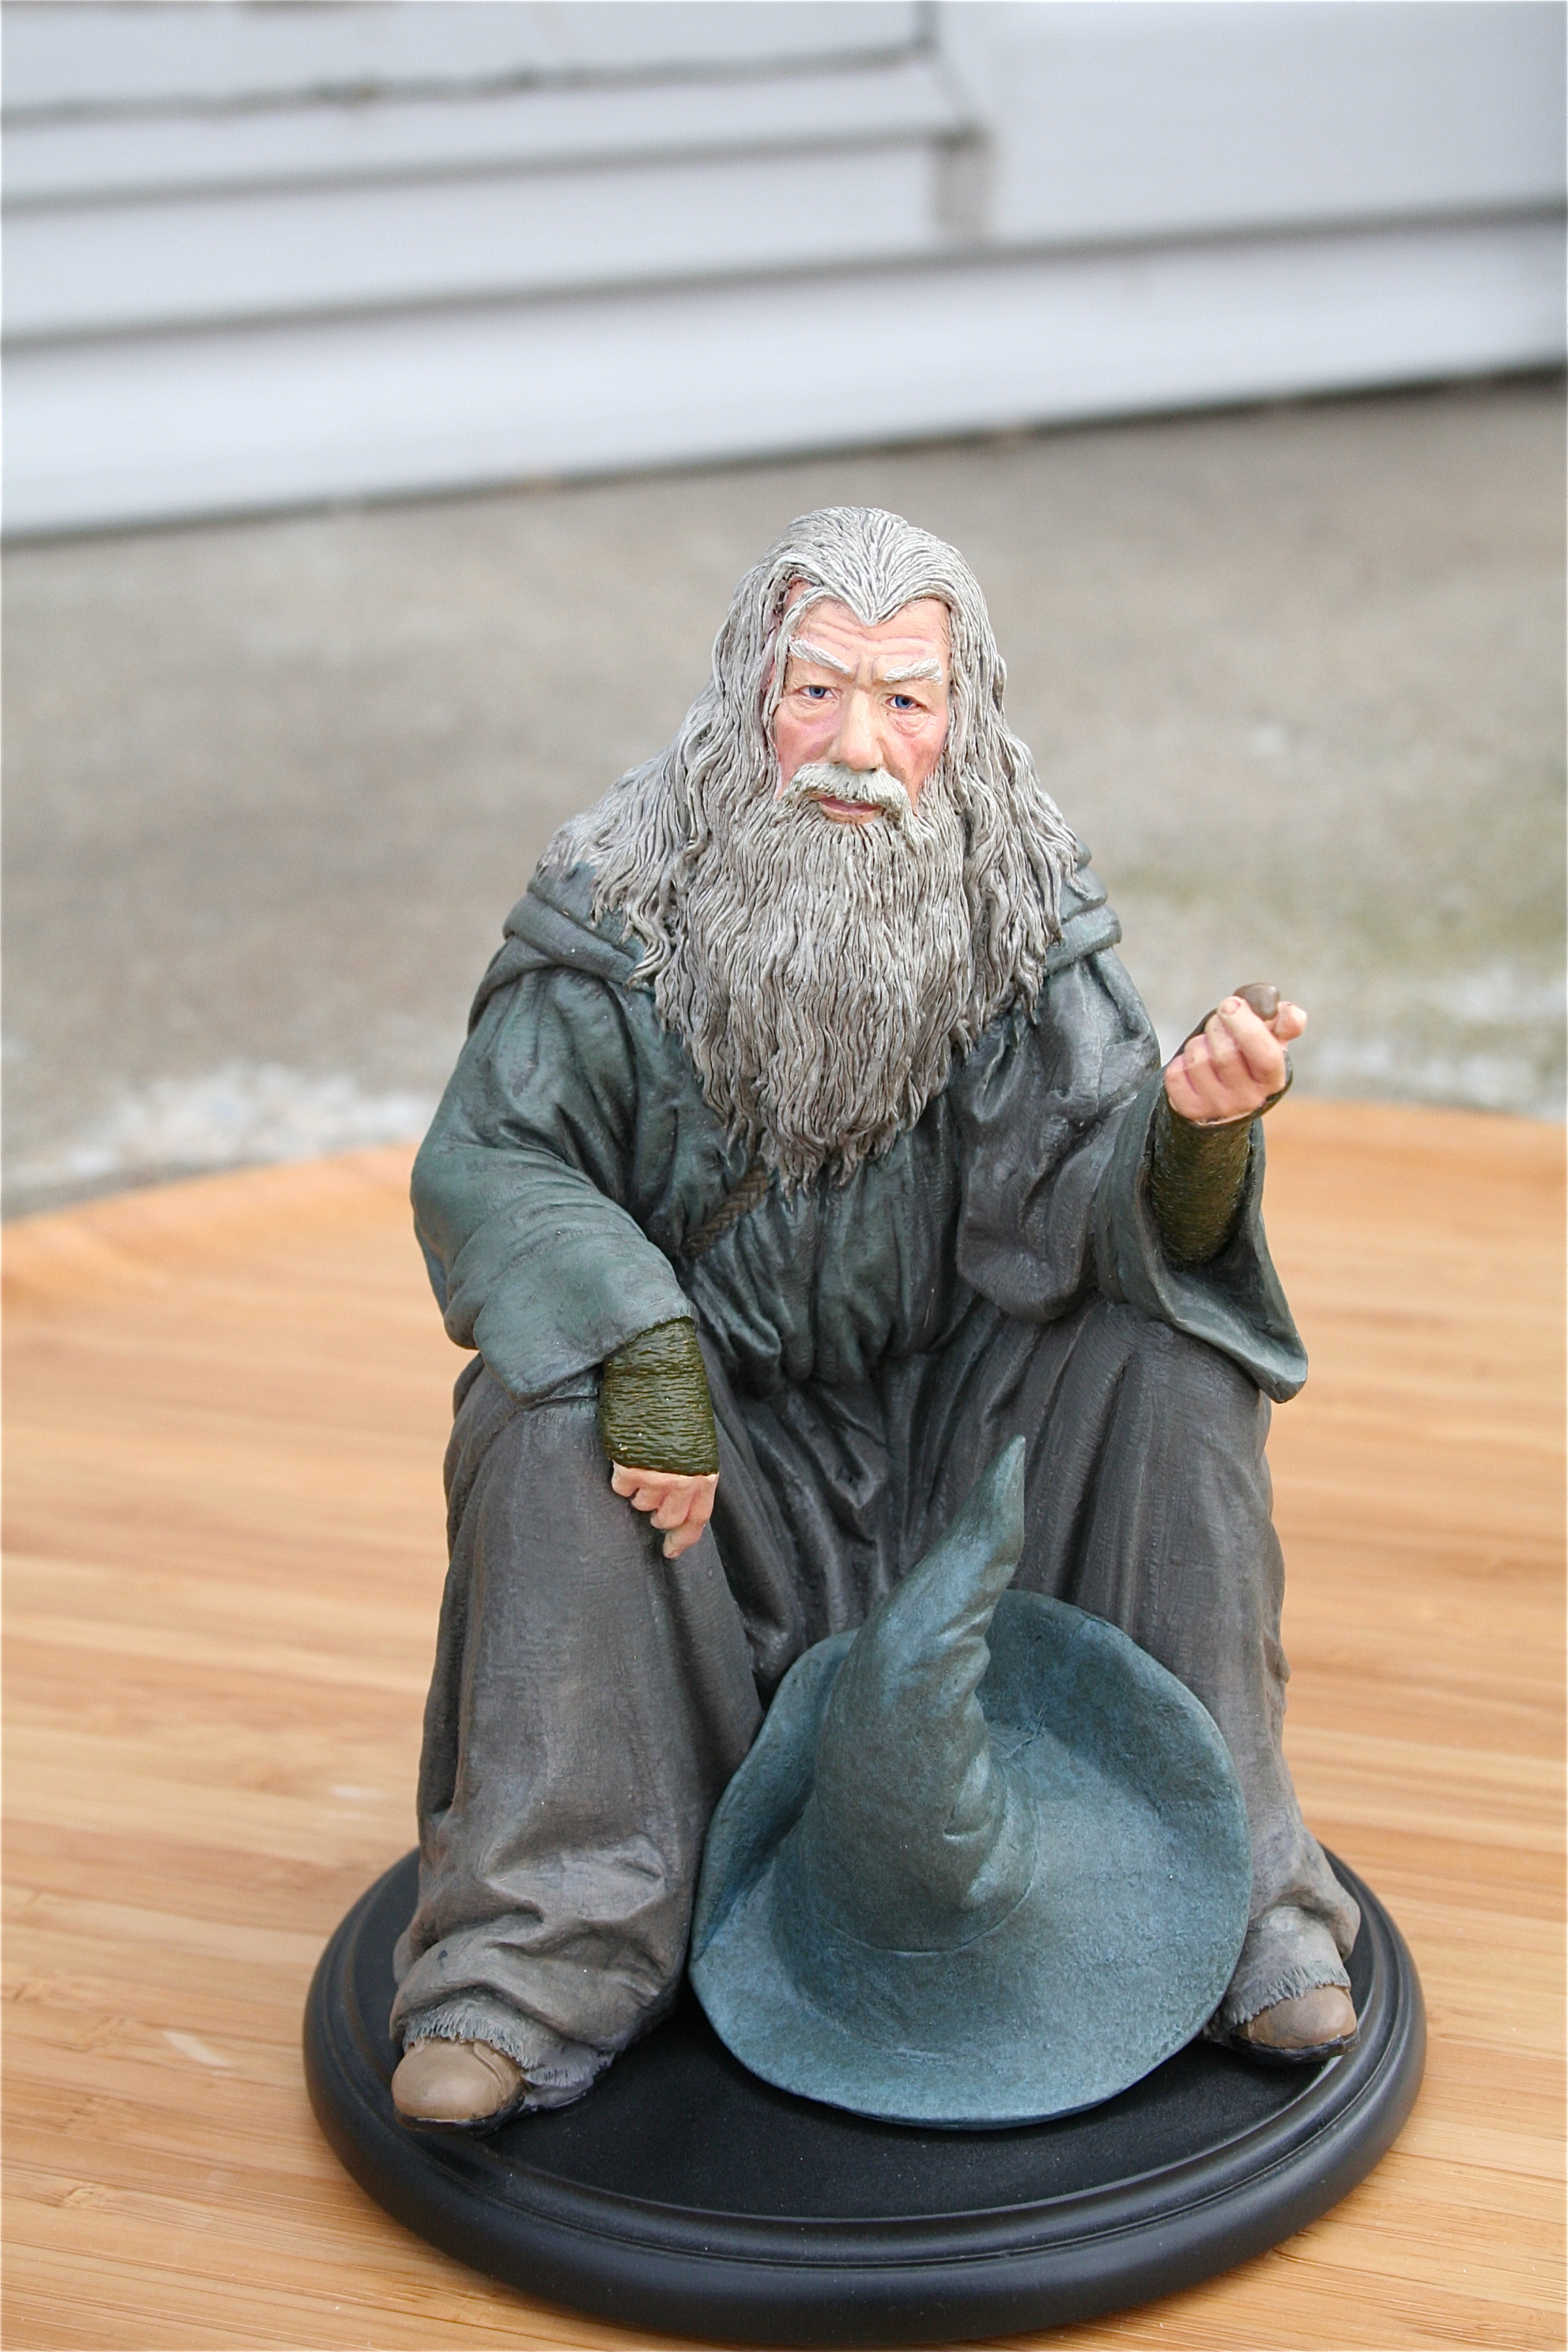 Collecting The Precious – Weta Workshop's Gandalf the Grey Statue and Giveaway! | Hobbit Movie News and Rumors | TheOneRing.net™